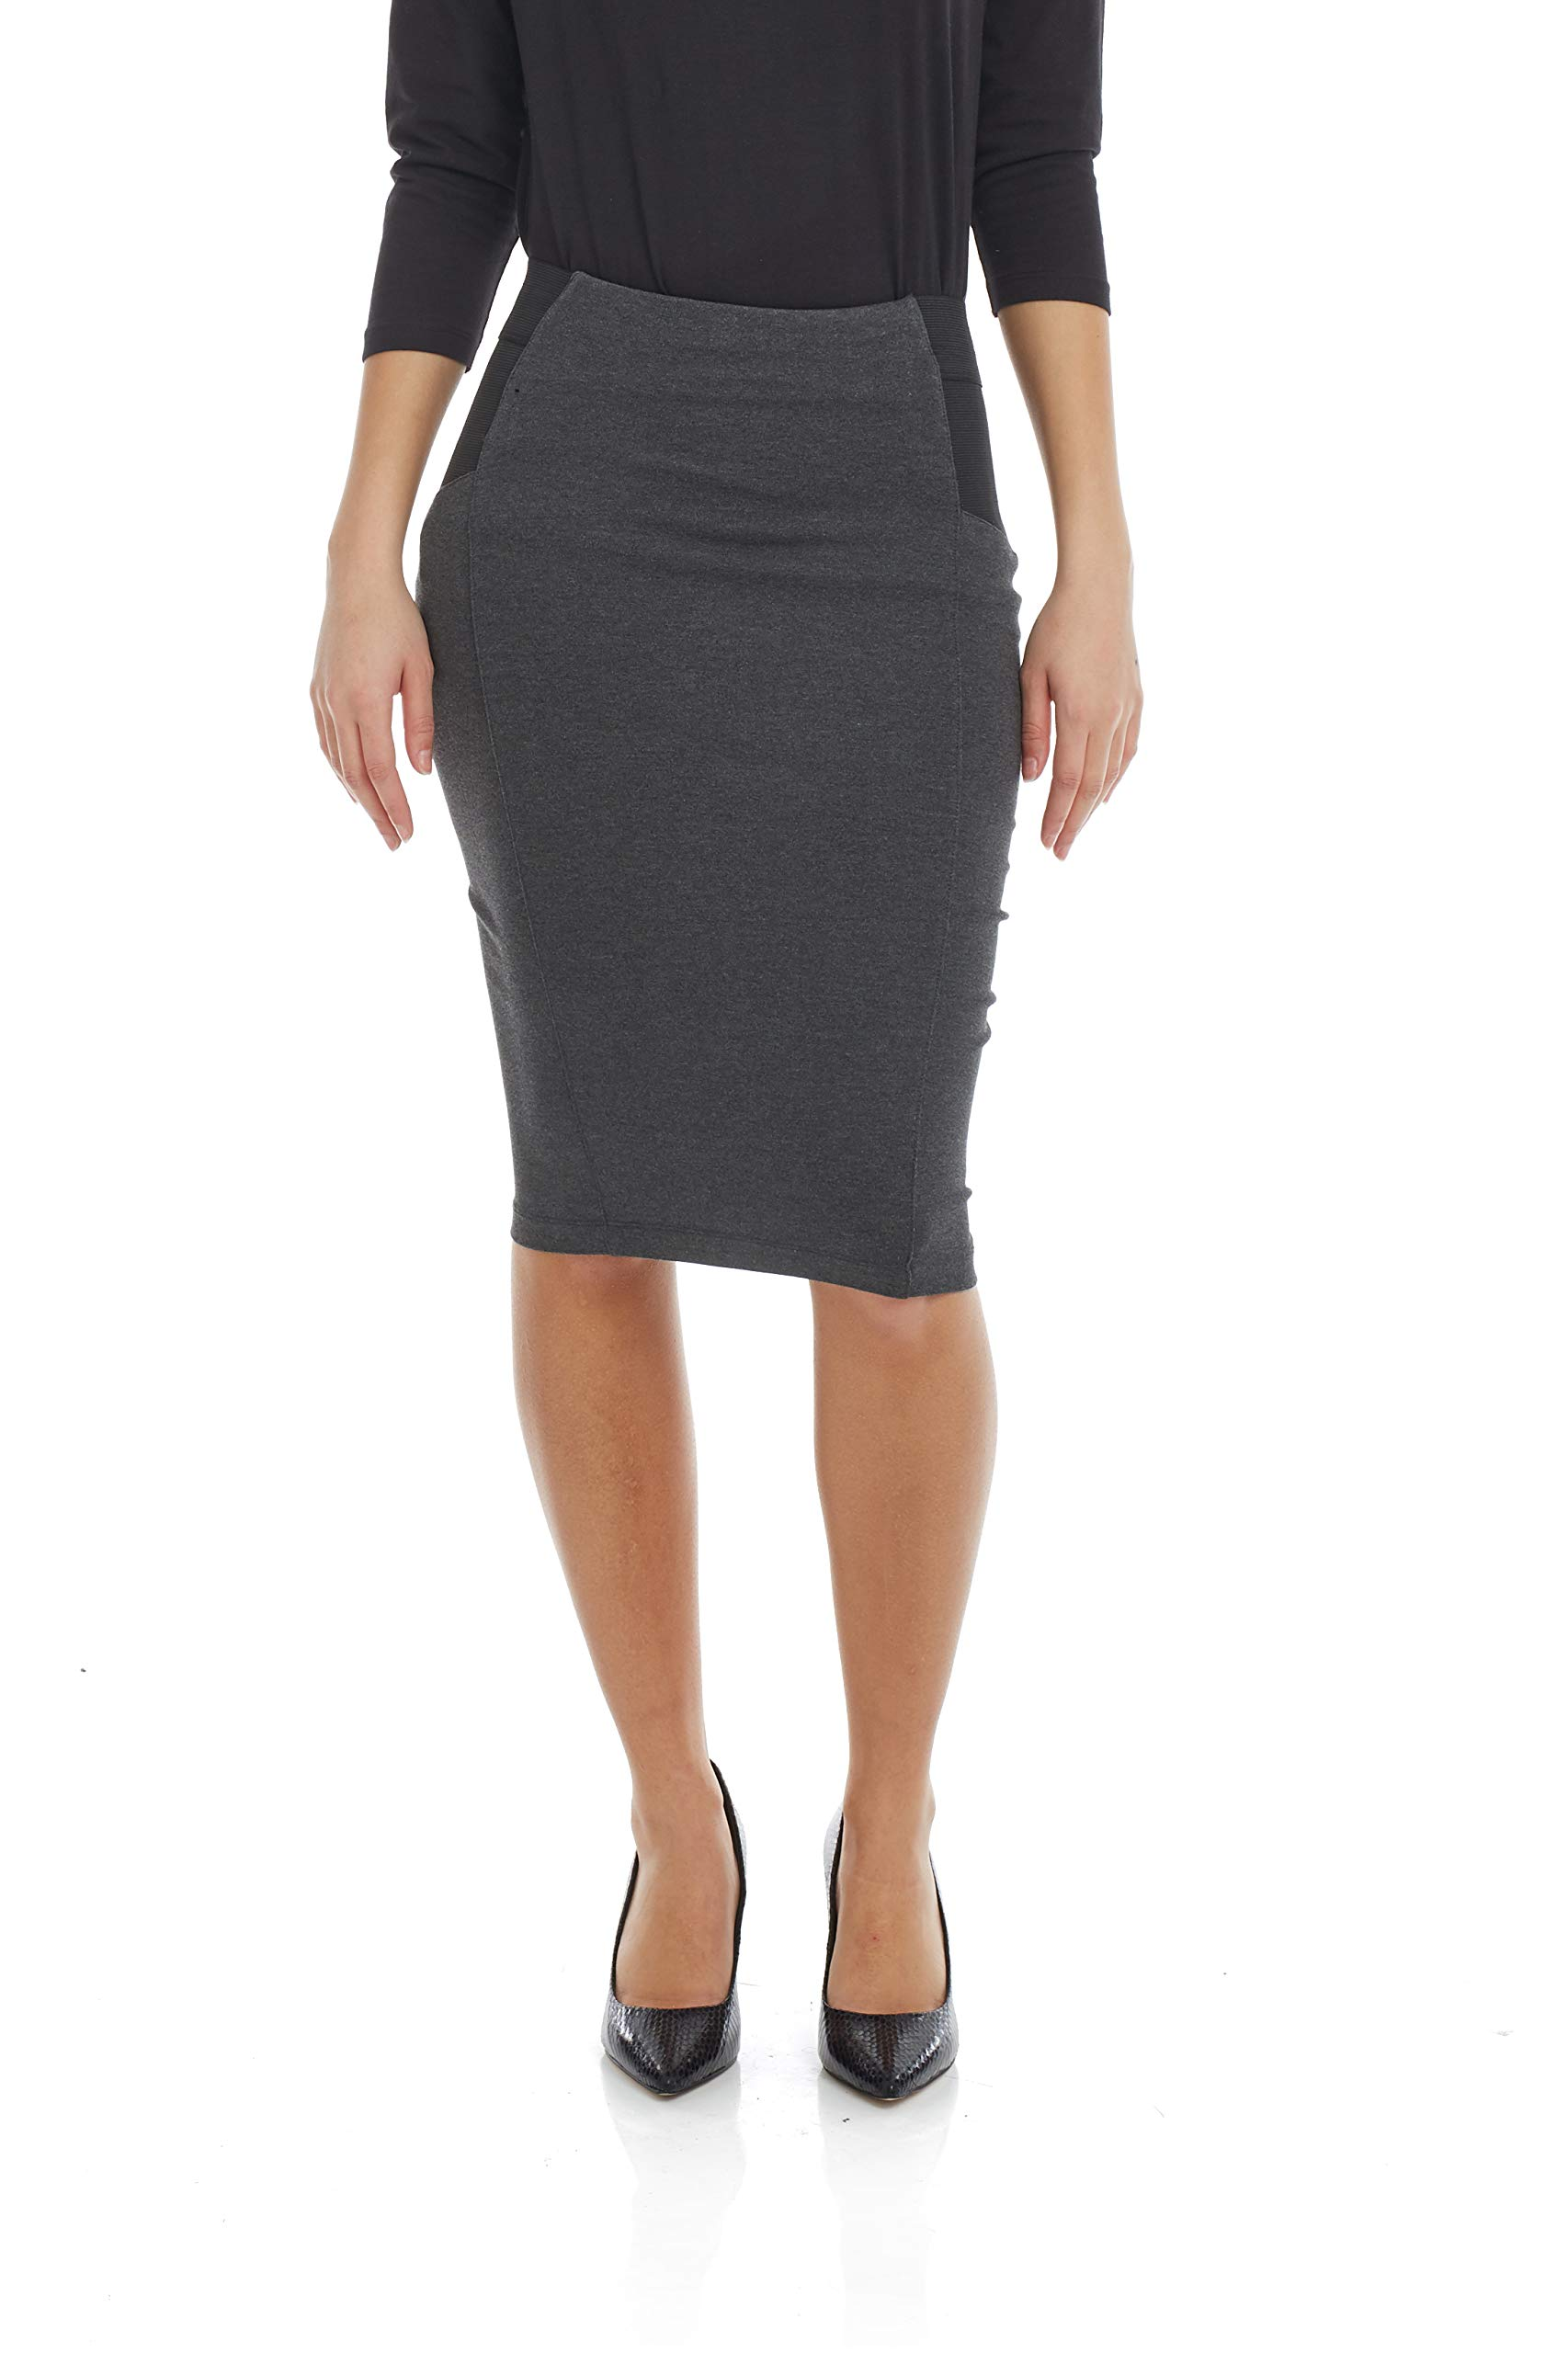 a5ae2c4852e0a Esteez Women s Pencil Skirt – Ponte Knit - Knee Length – Slimming Side  Panels - Charlotte